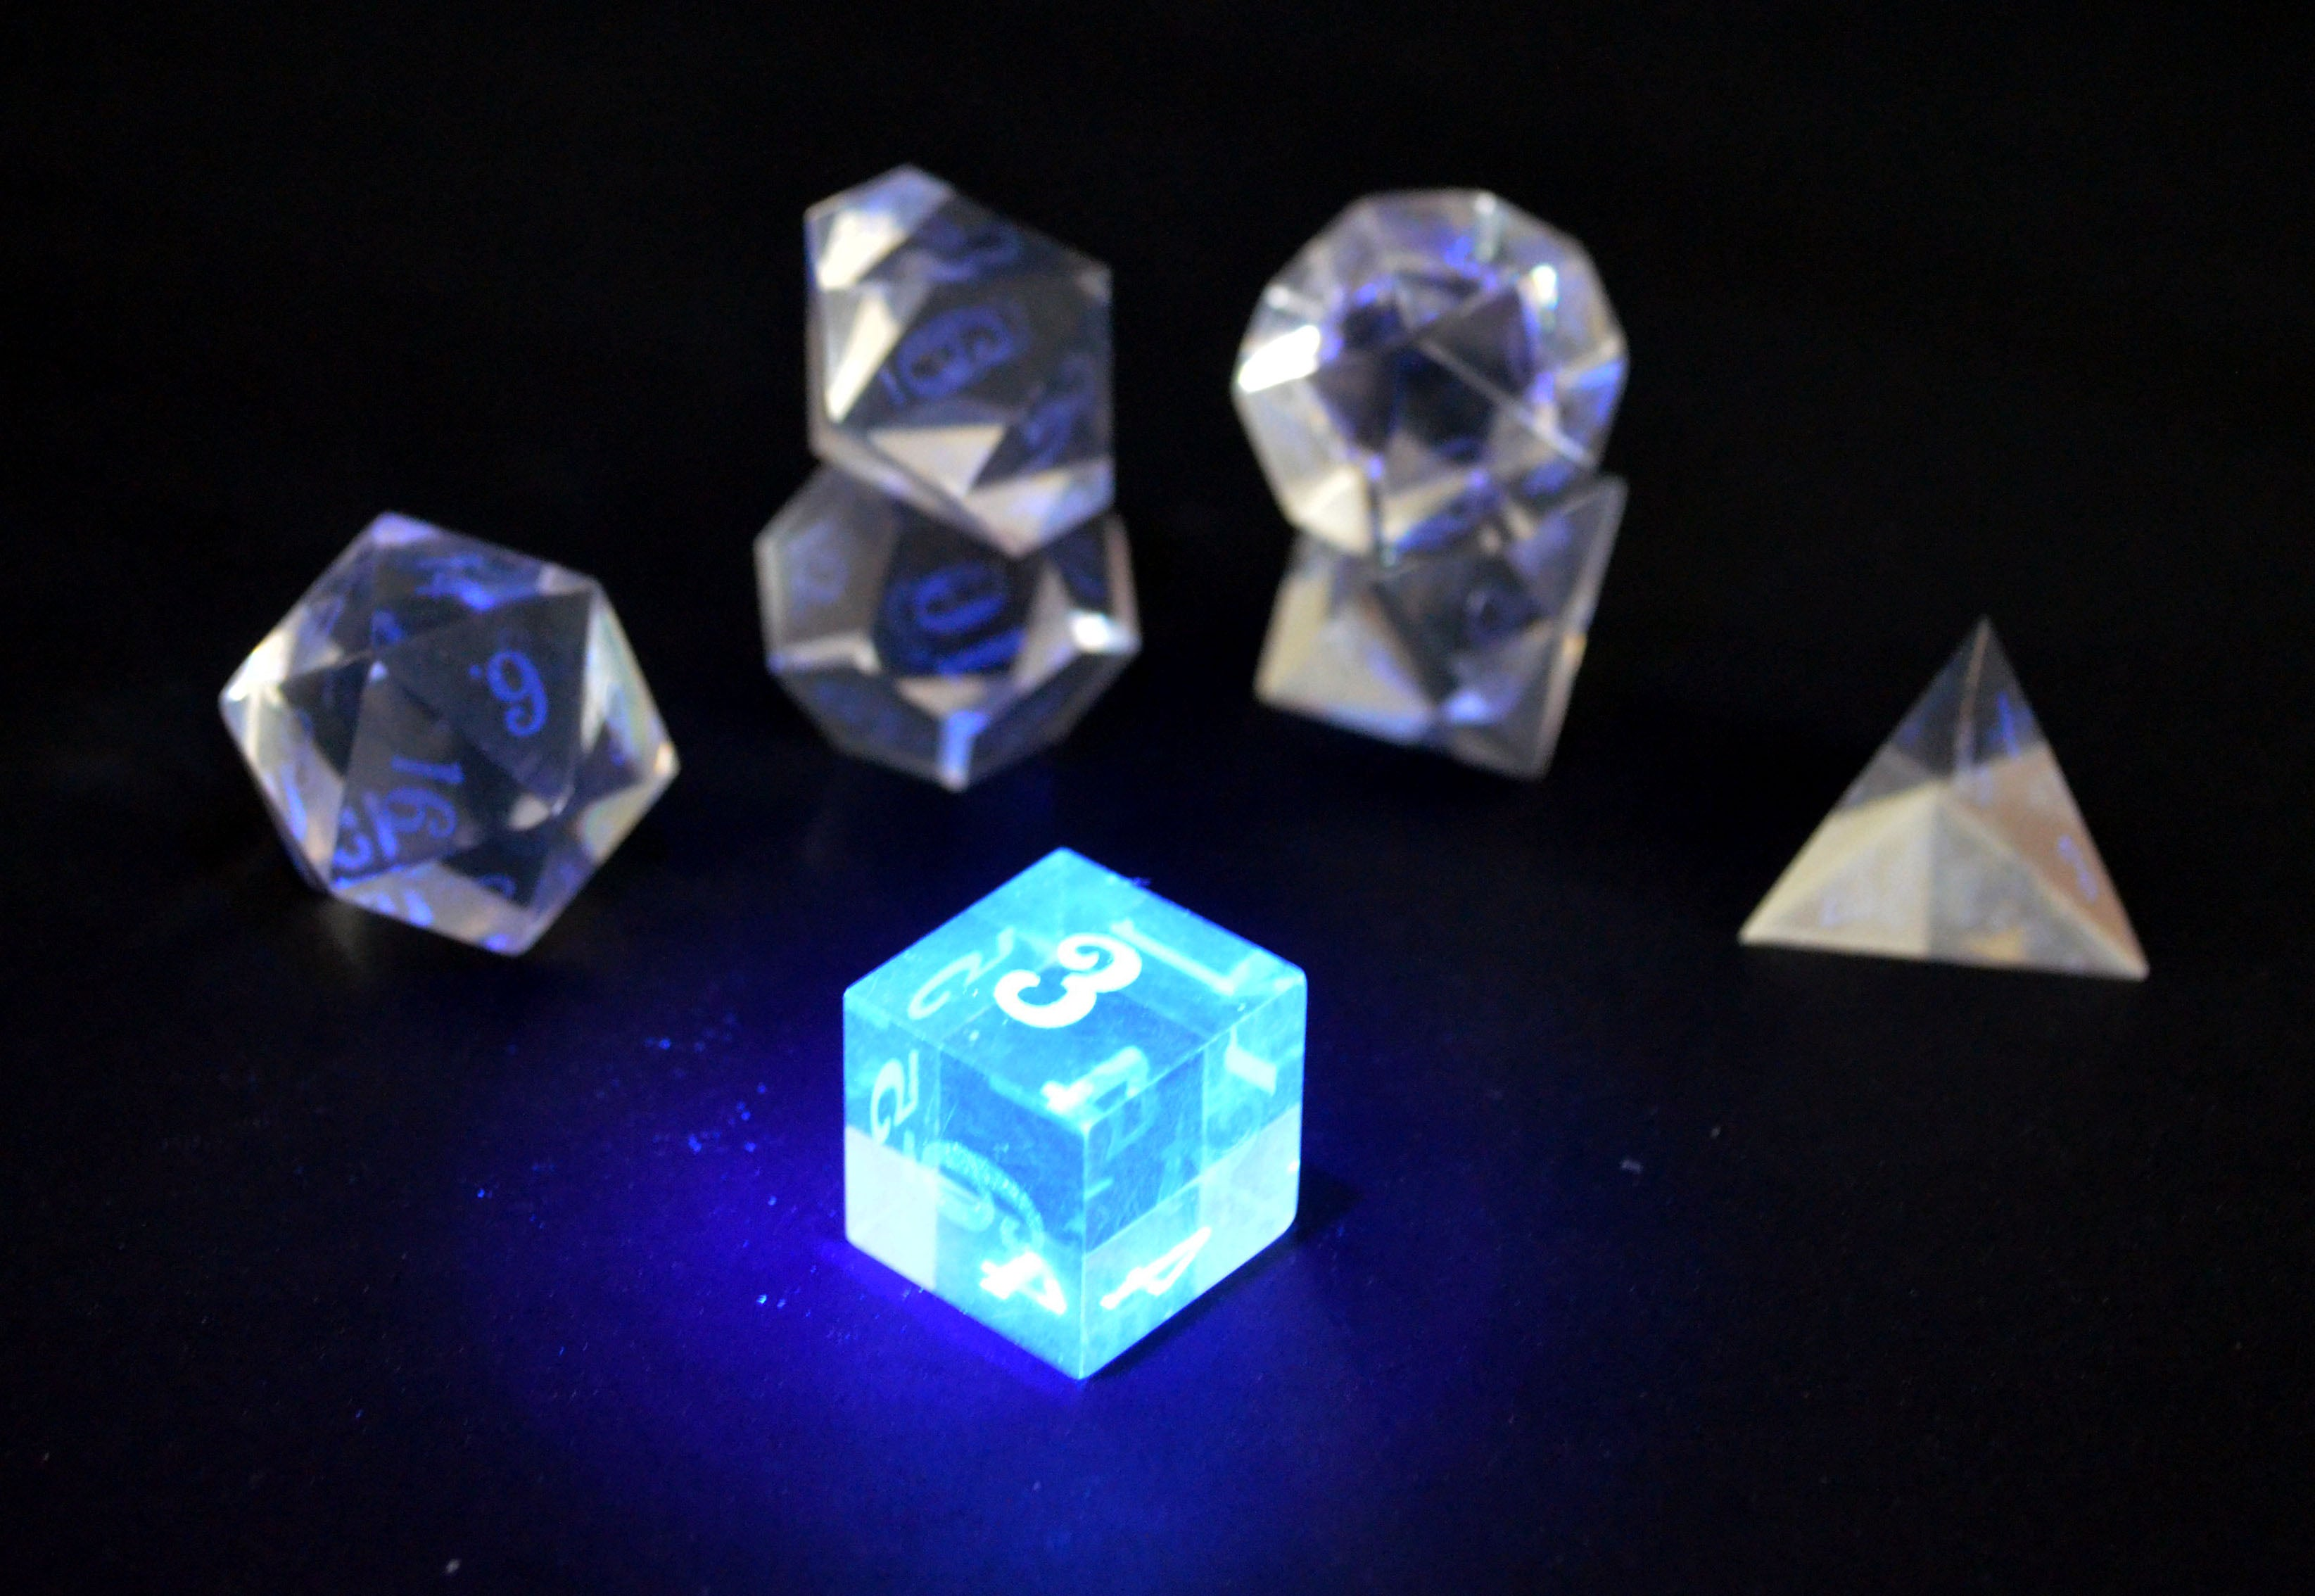 Stealth Mk3 UV Black UV Light Dice Set